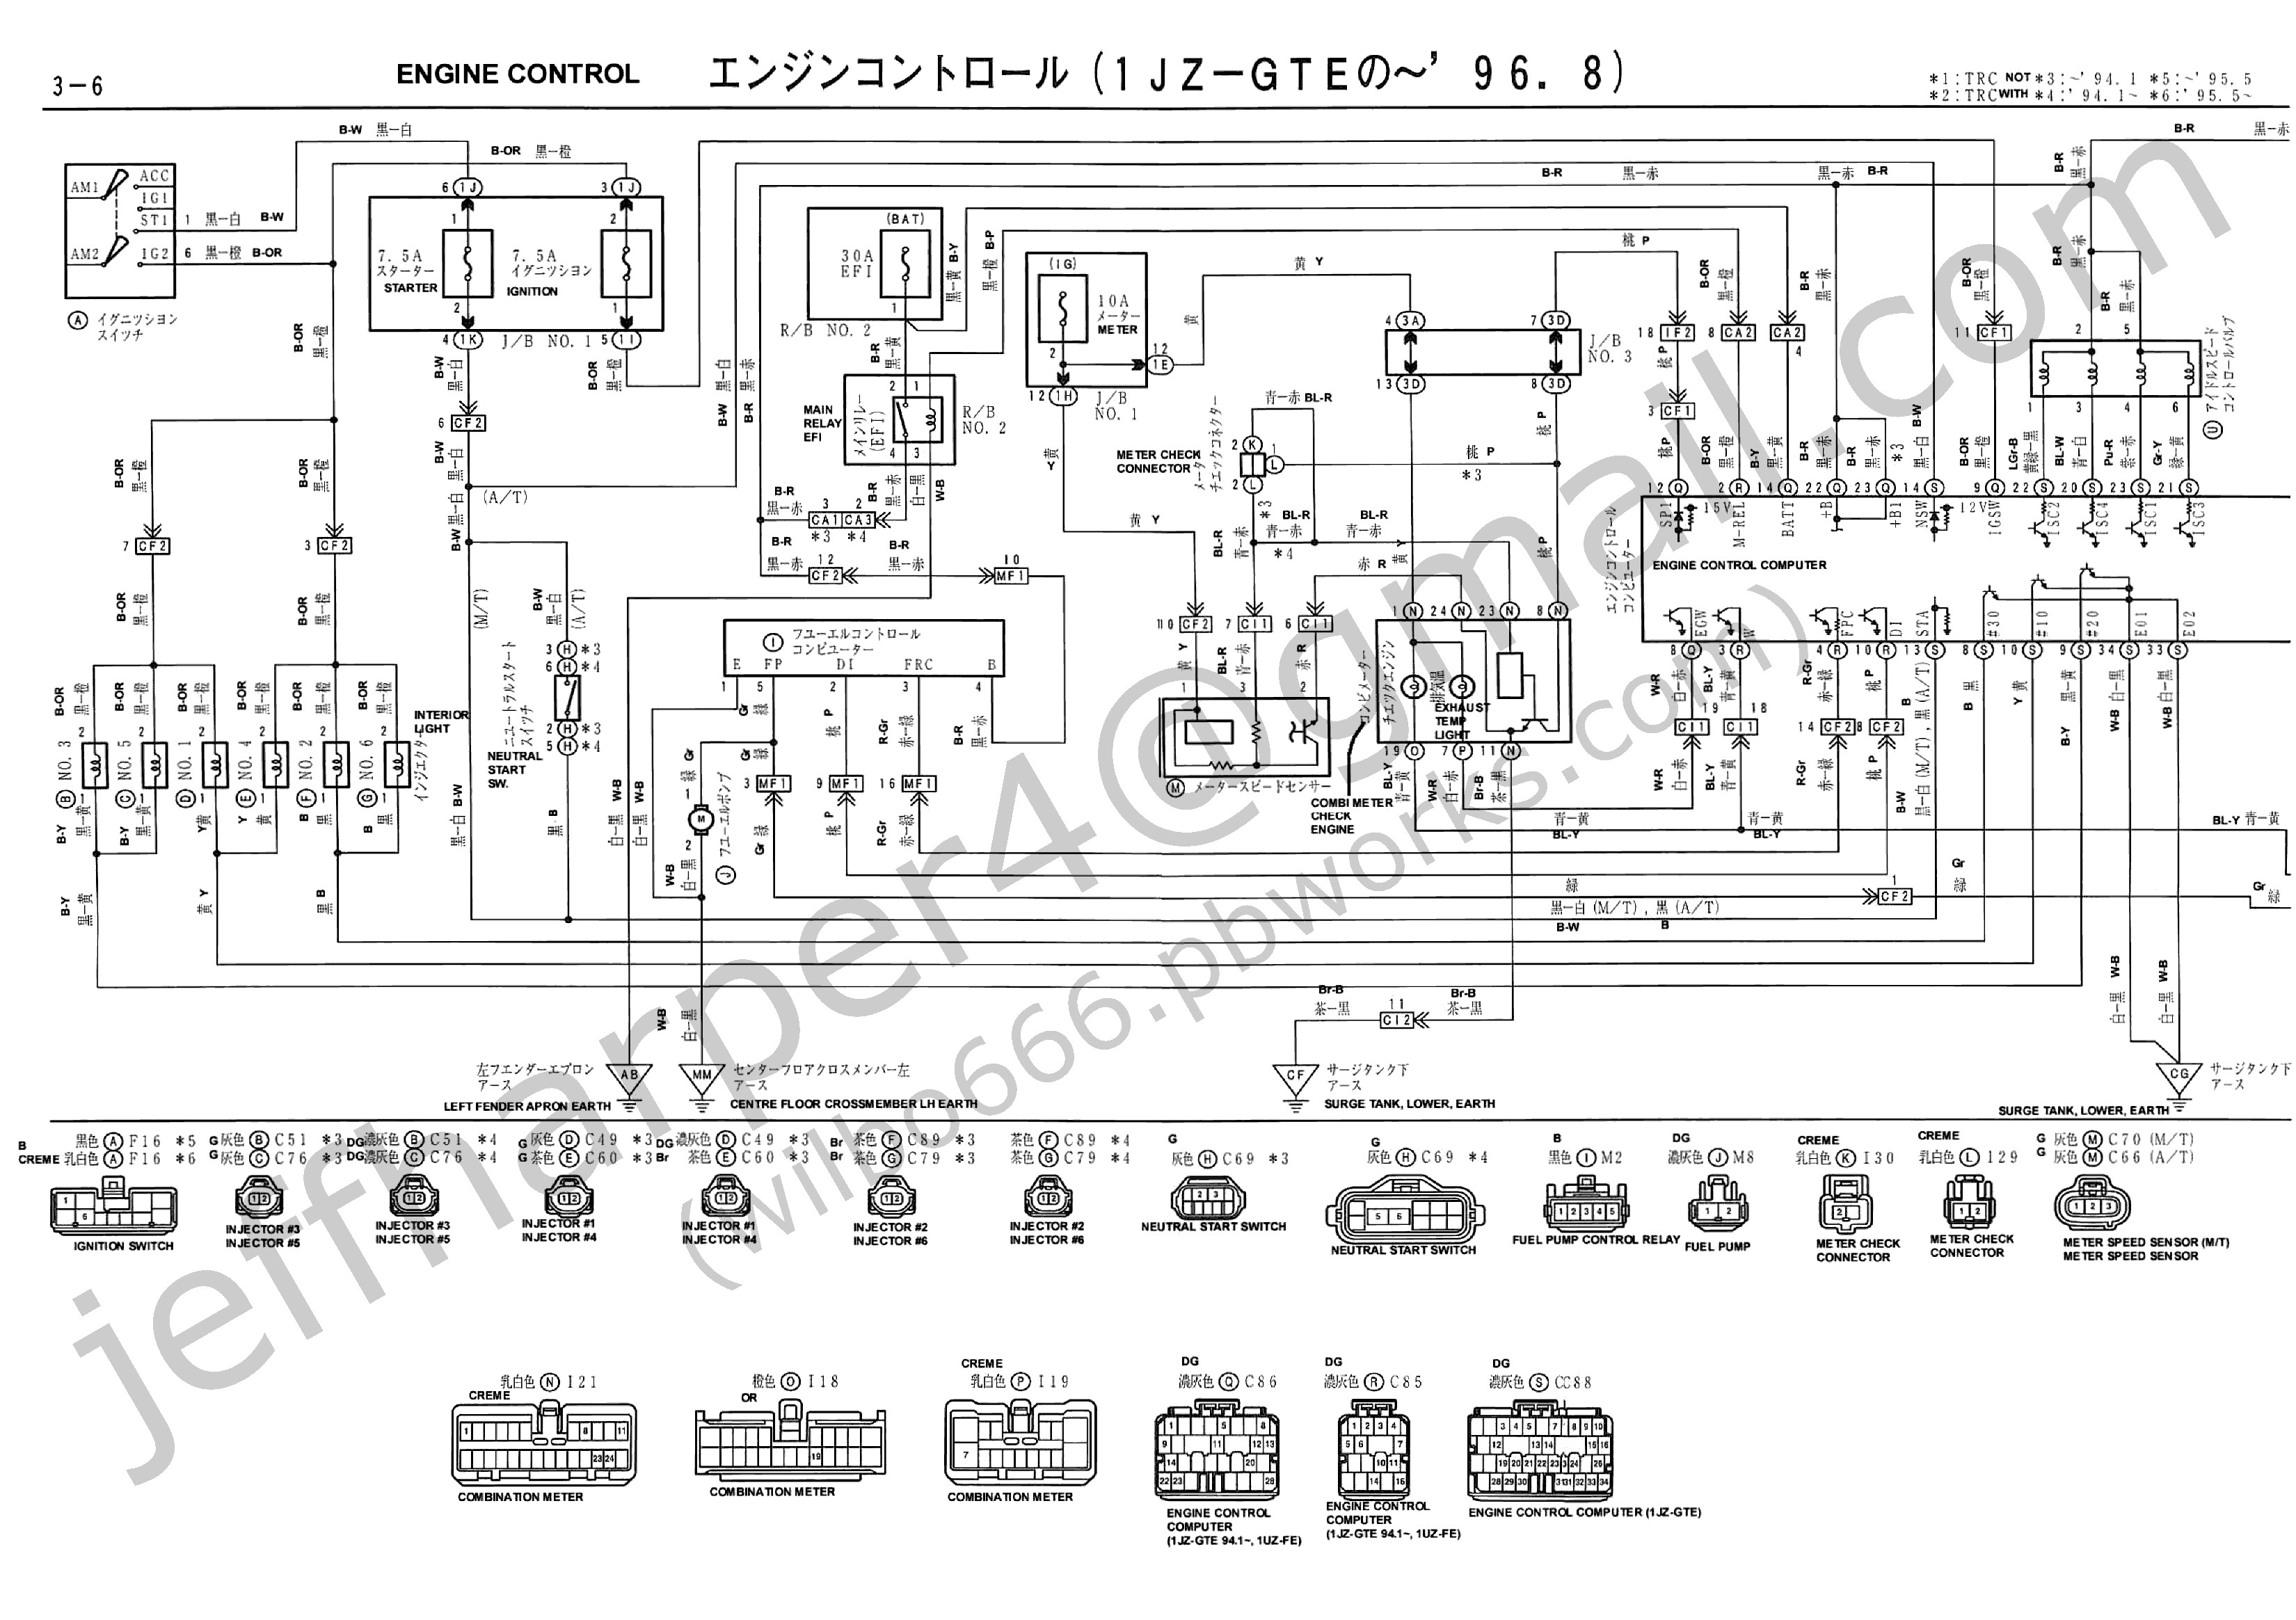 Toyota Camry 1998 Engine Diagram 7mge 3 0 Free 1992 Download Wiring